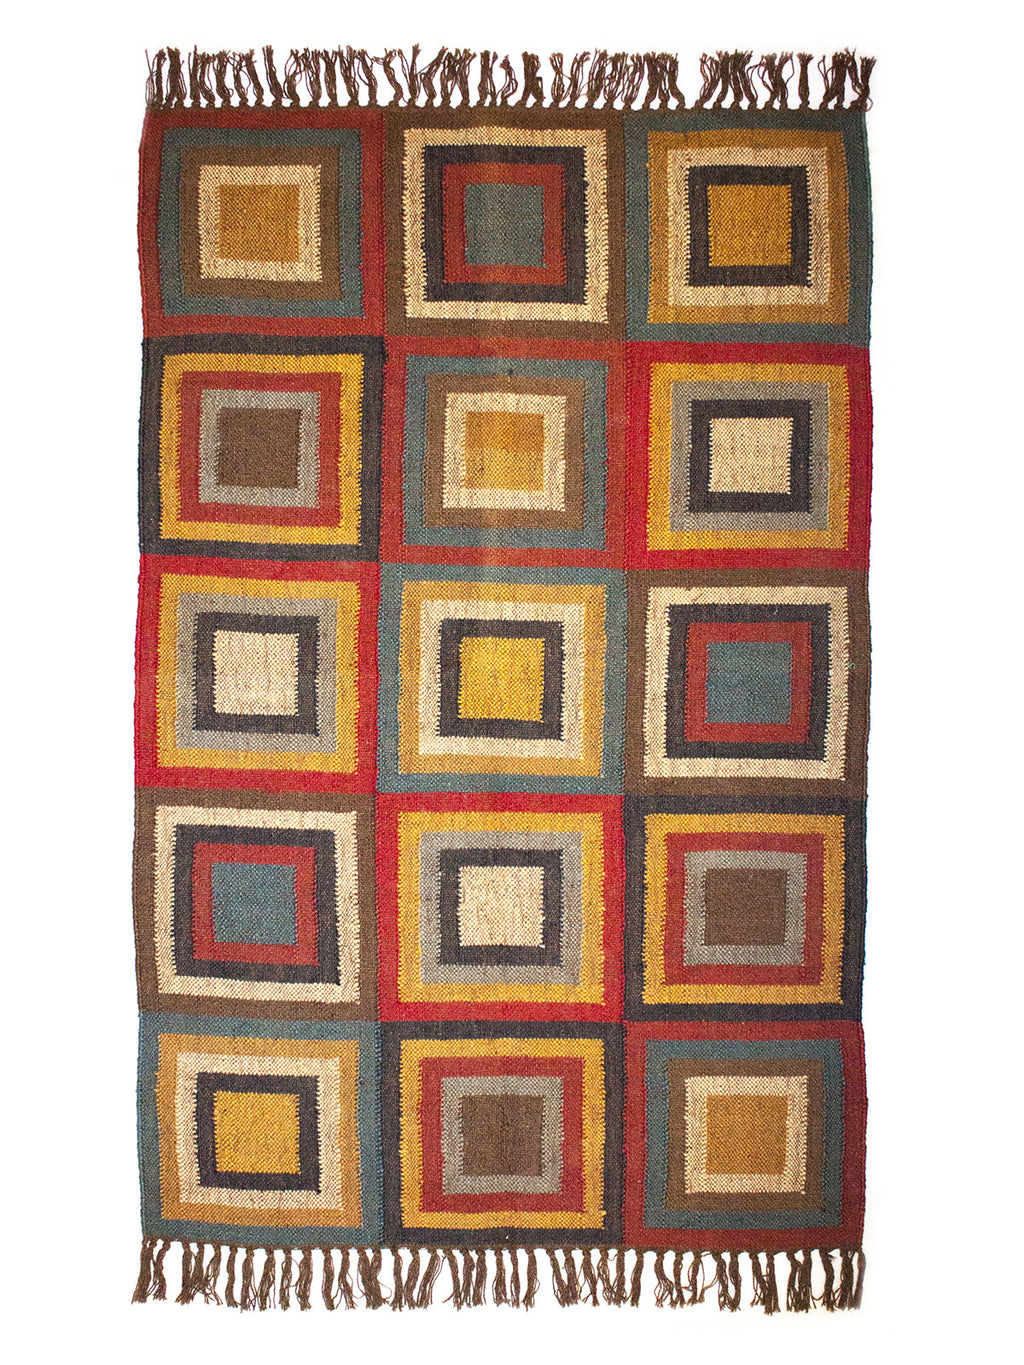 Concentric Magic Squares Multicolour Kilim - Medium